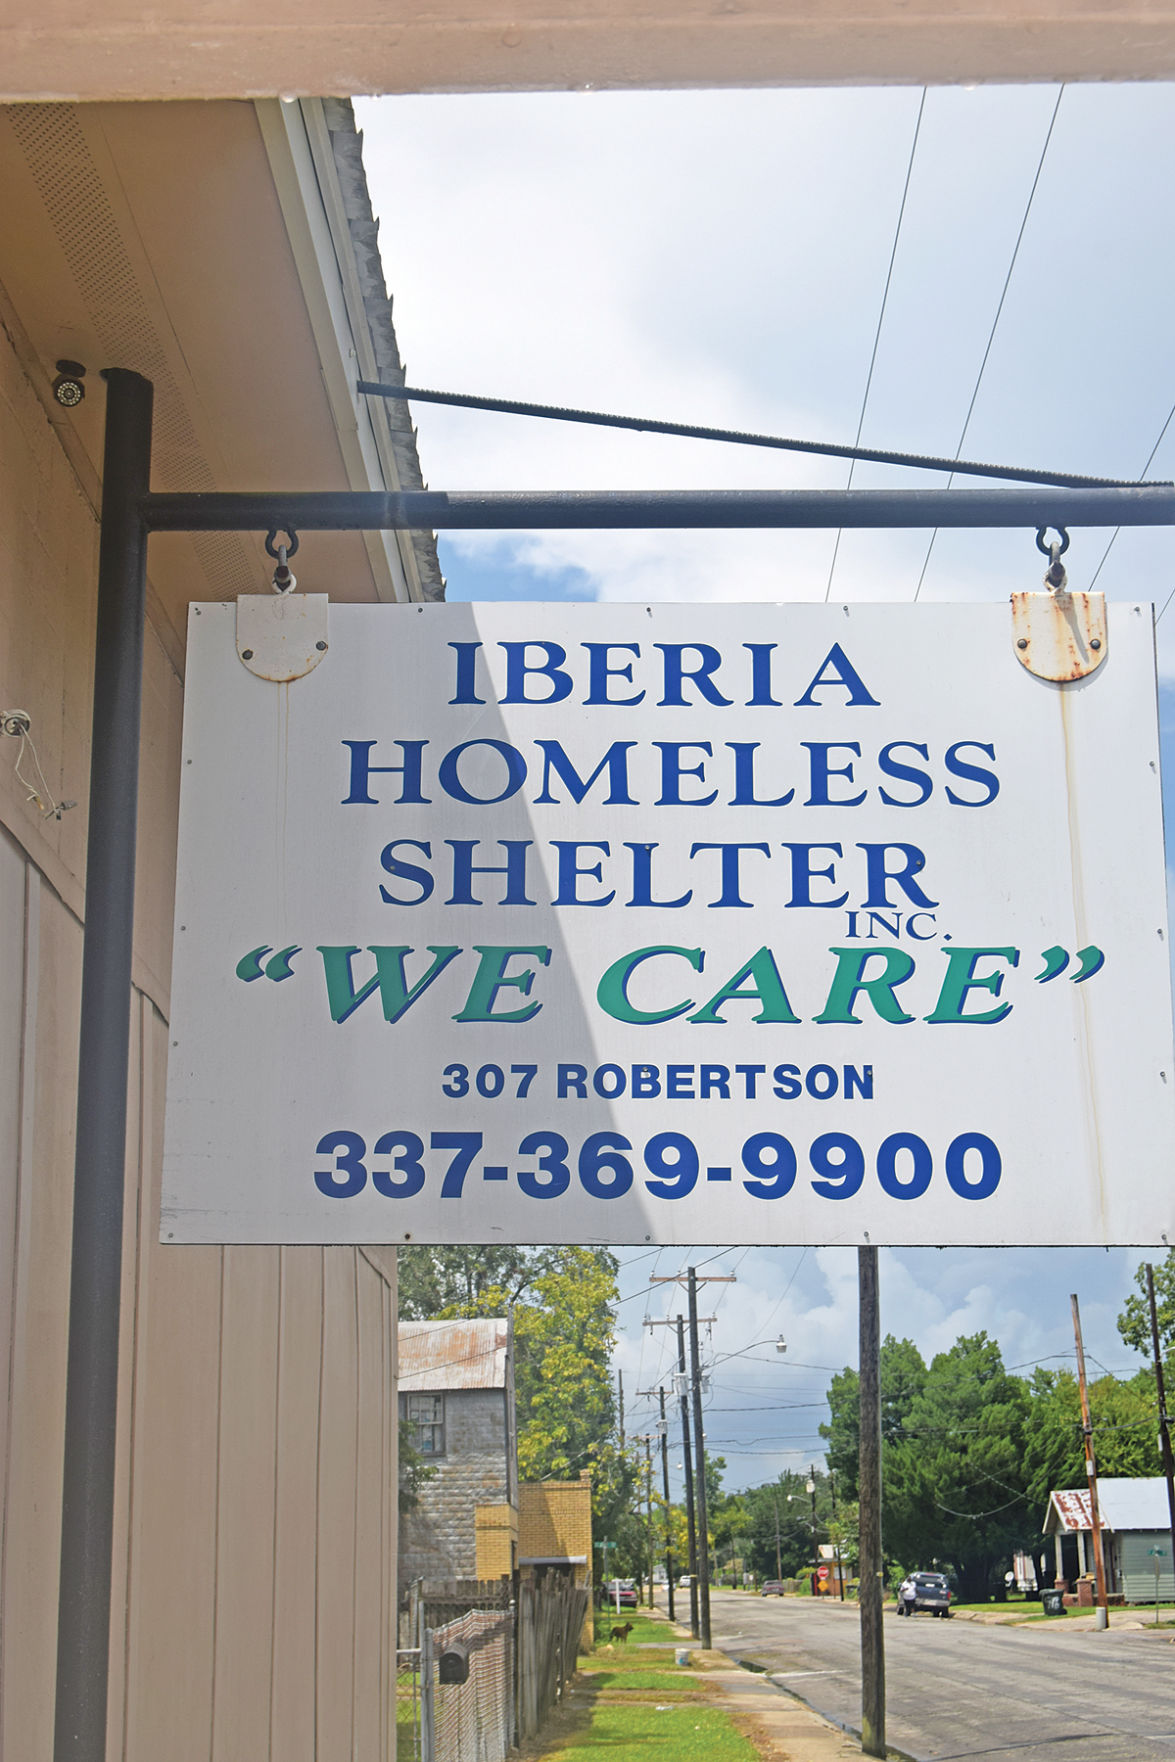 Shelter helping women now, too